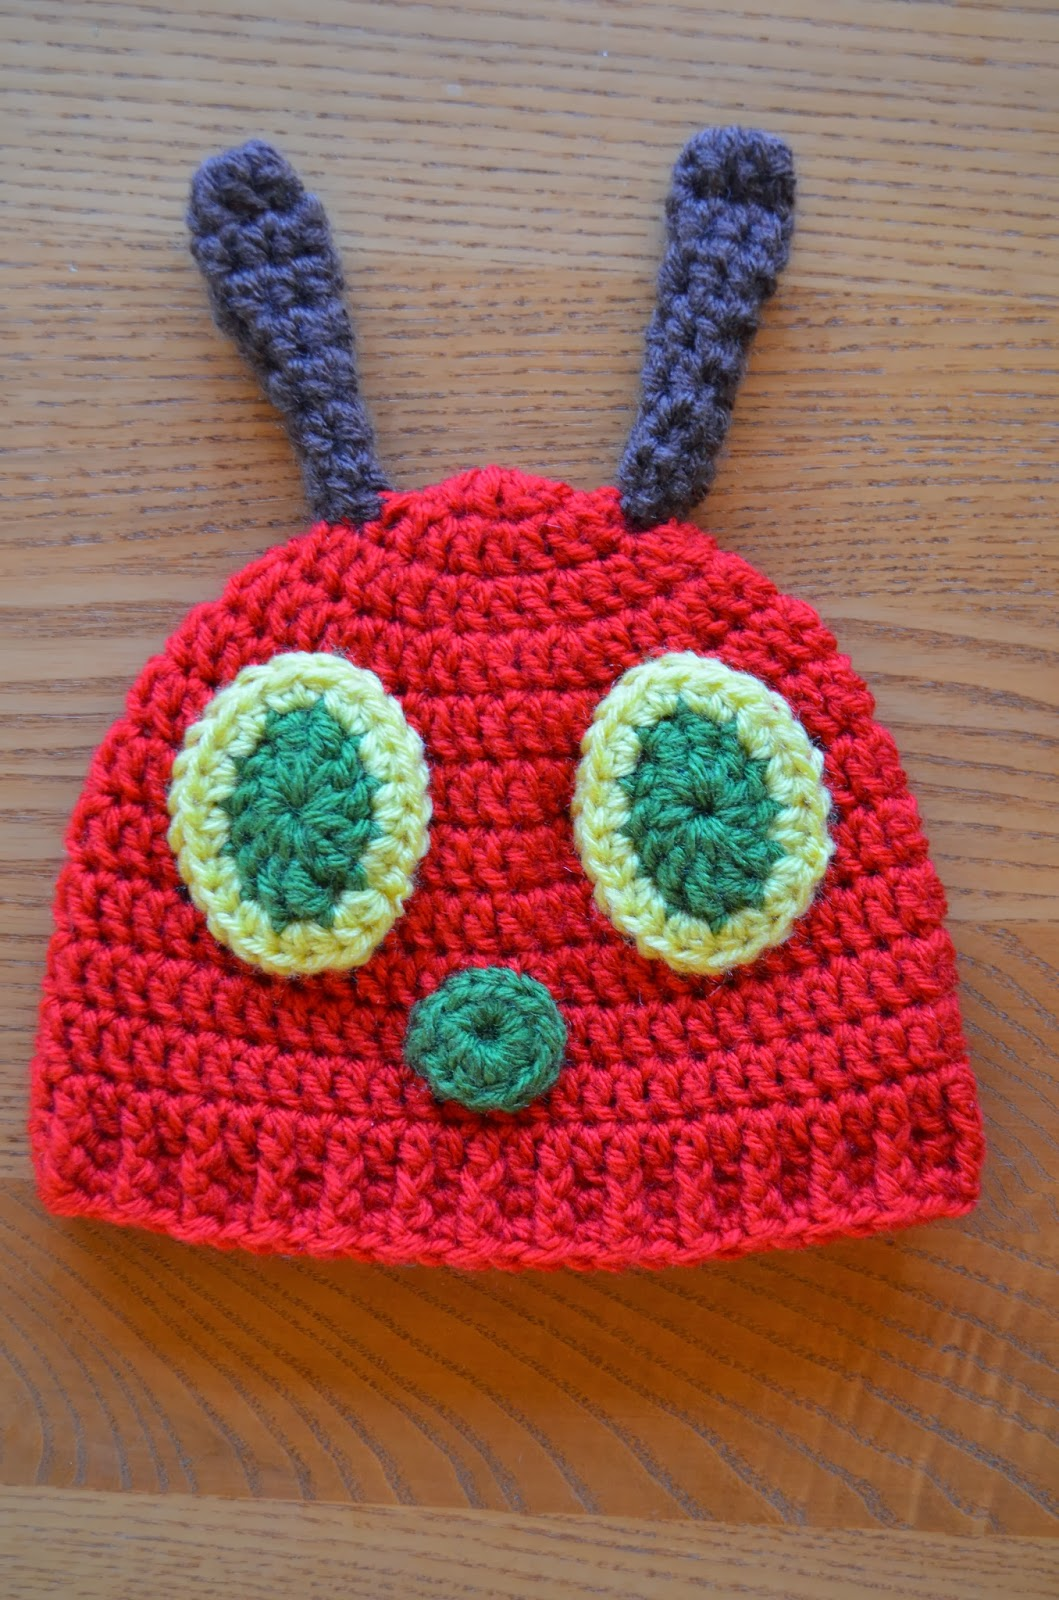 Crochet Caterpillar Hat Pattern : 41 Adorable Crochet Baby Hats & Patterns to Make